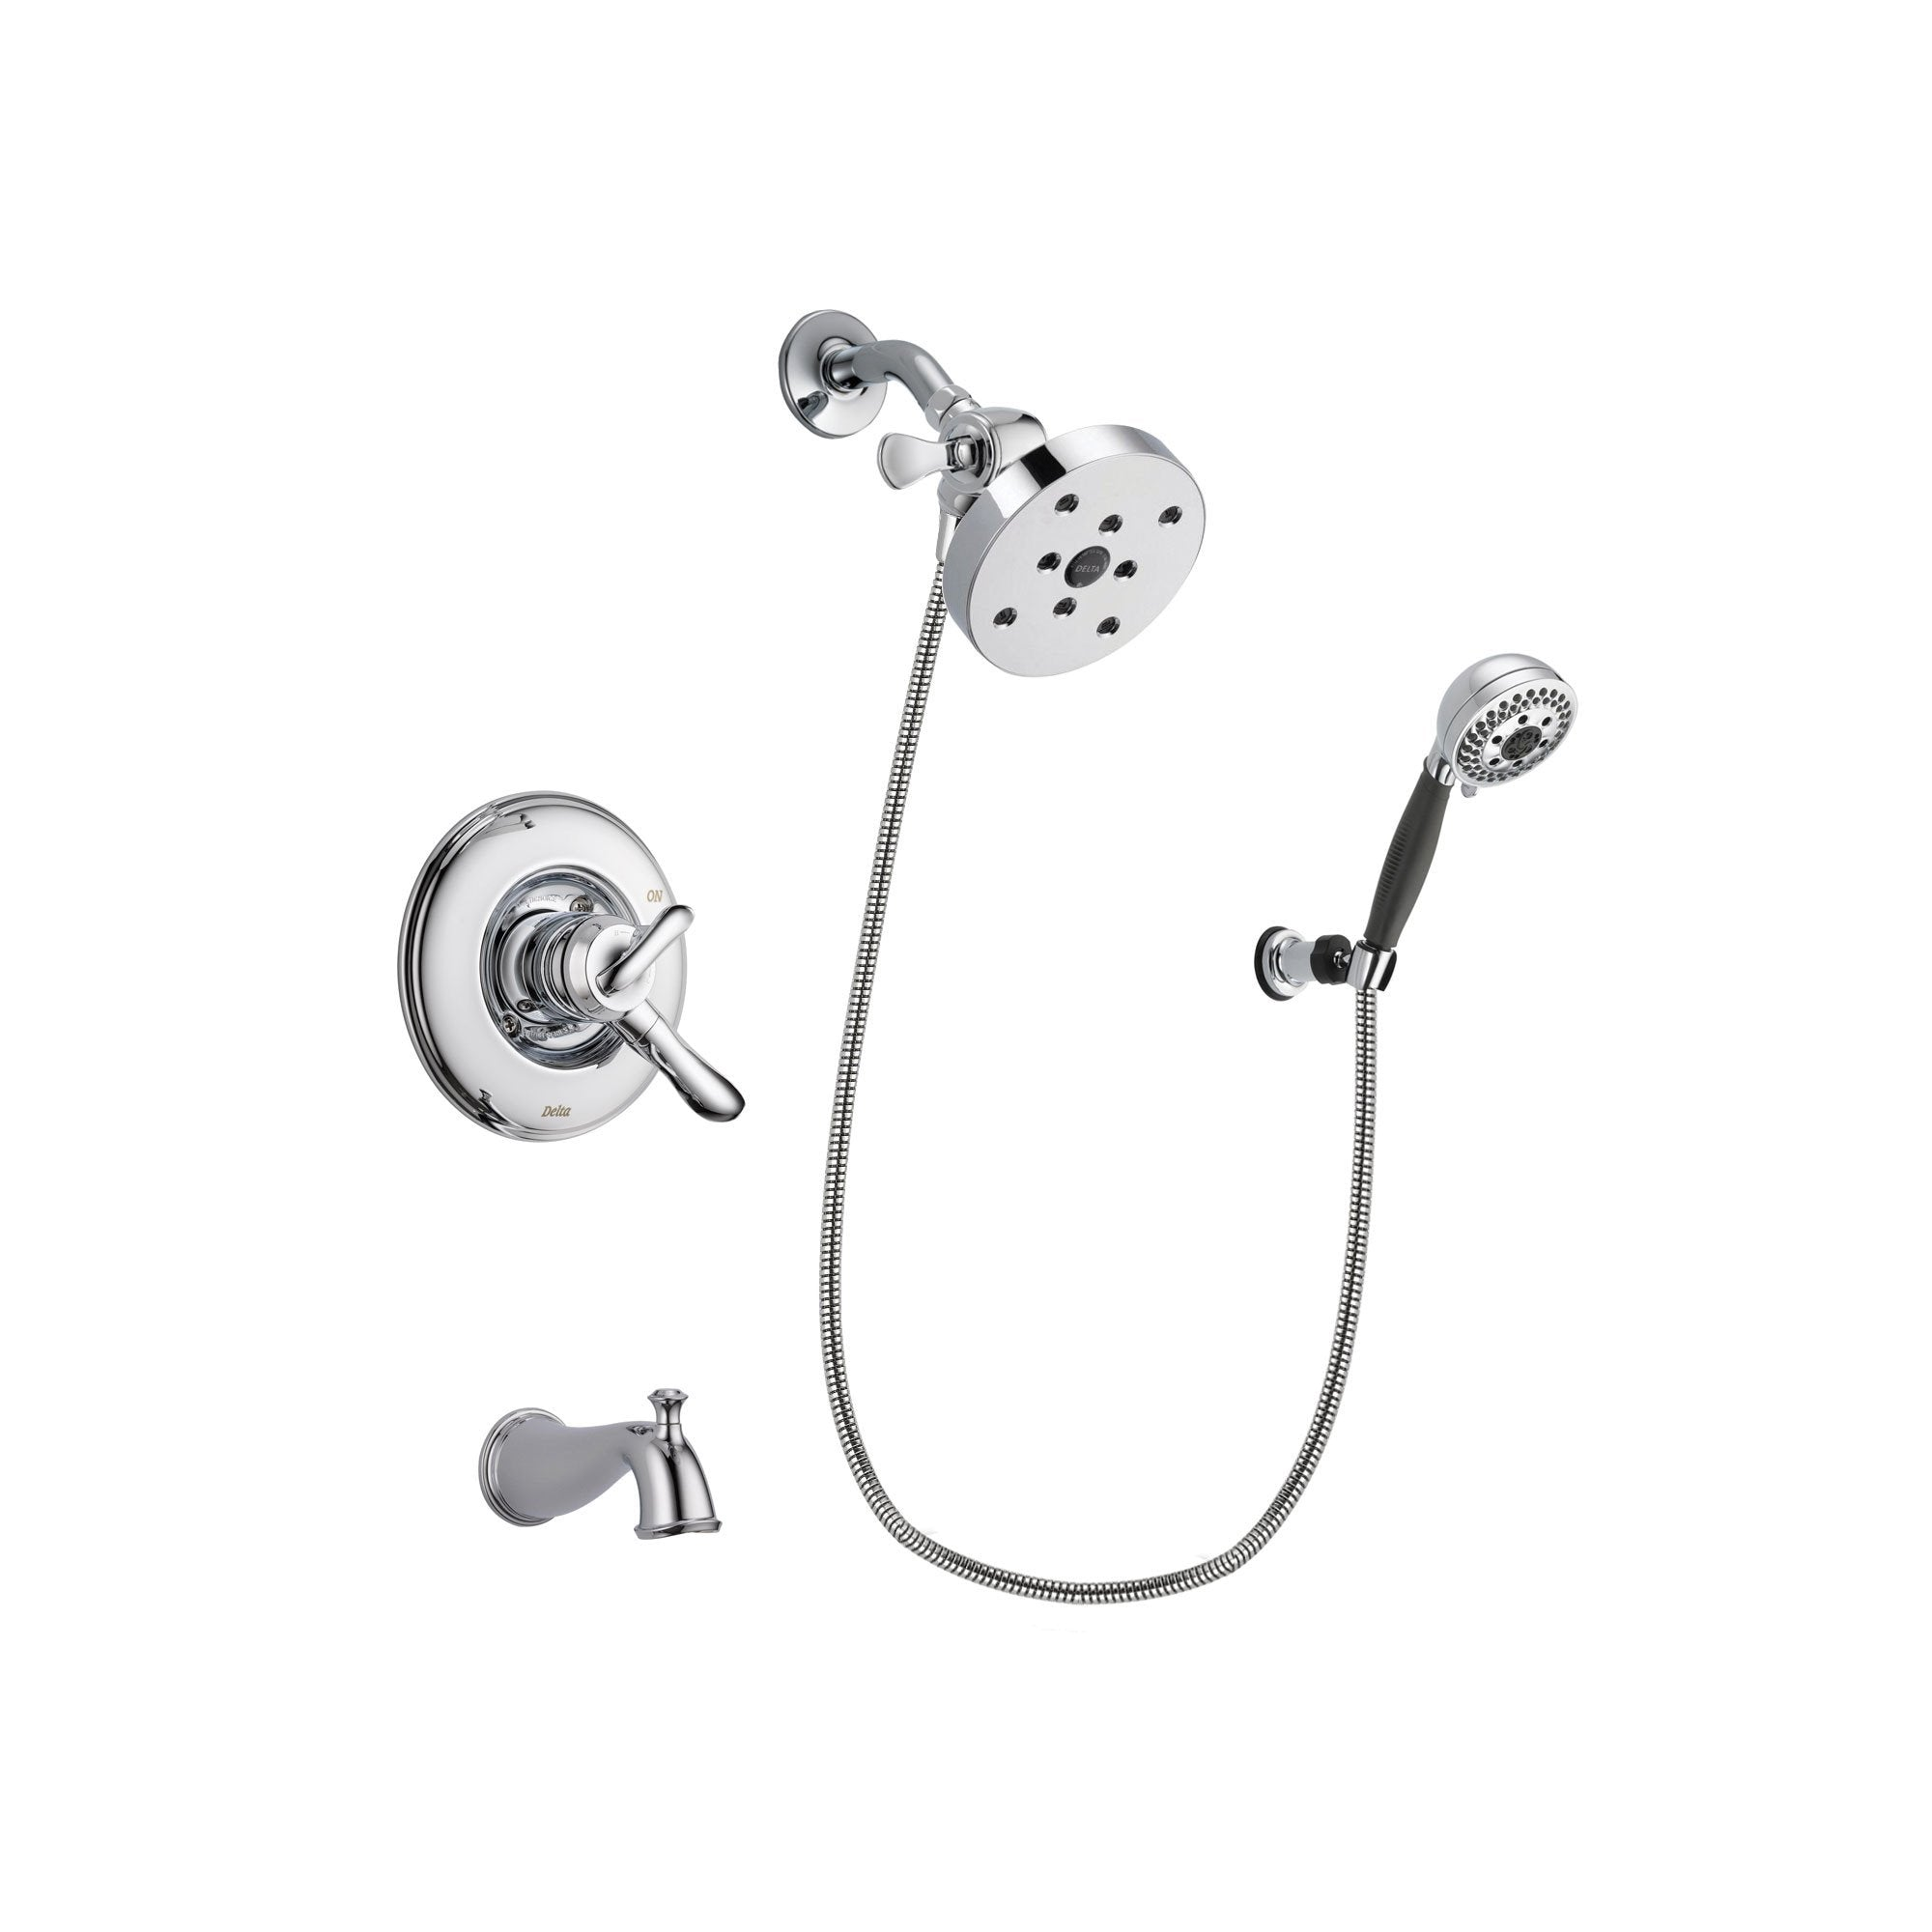 Delta Linden Chrome Tub and Shower Faucet System with Hand Shower DSP1237V